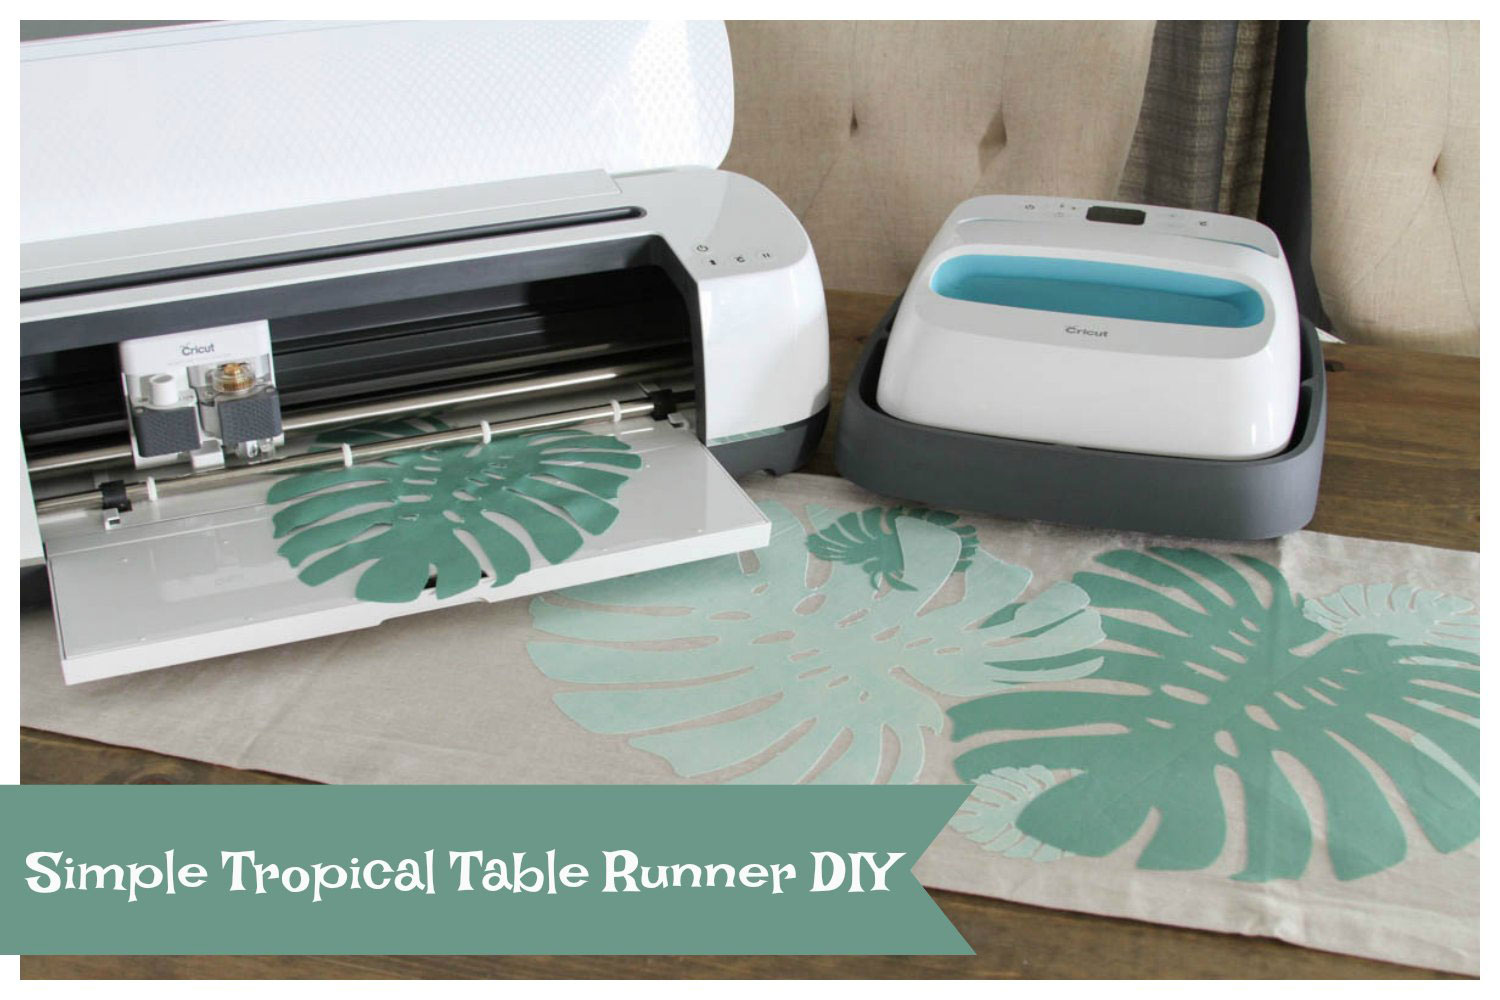 Fabric appliques with the Cricut Maker